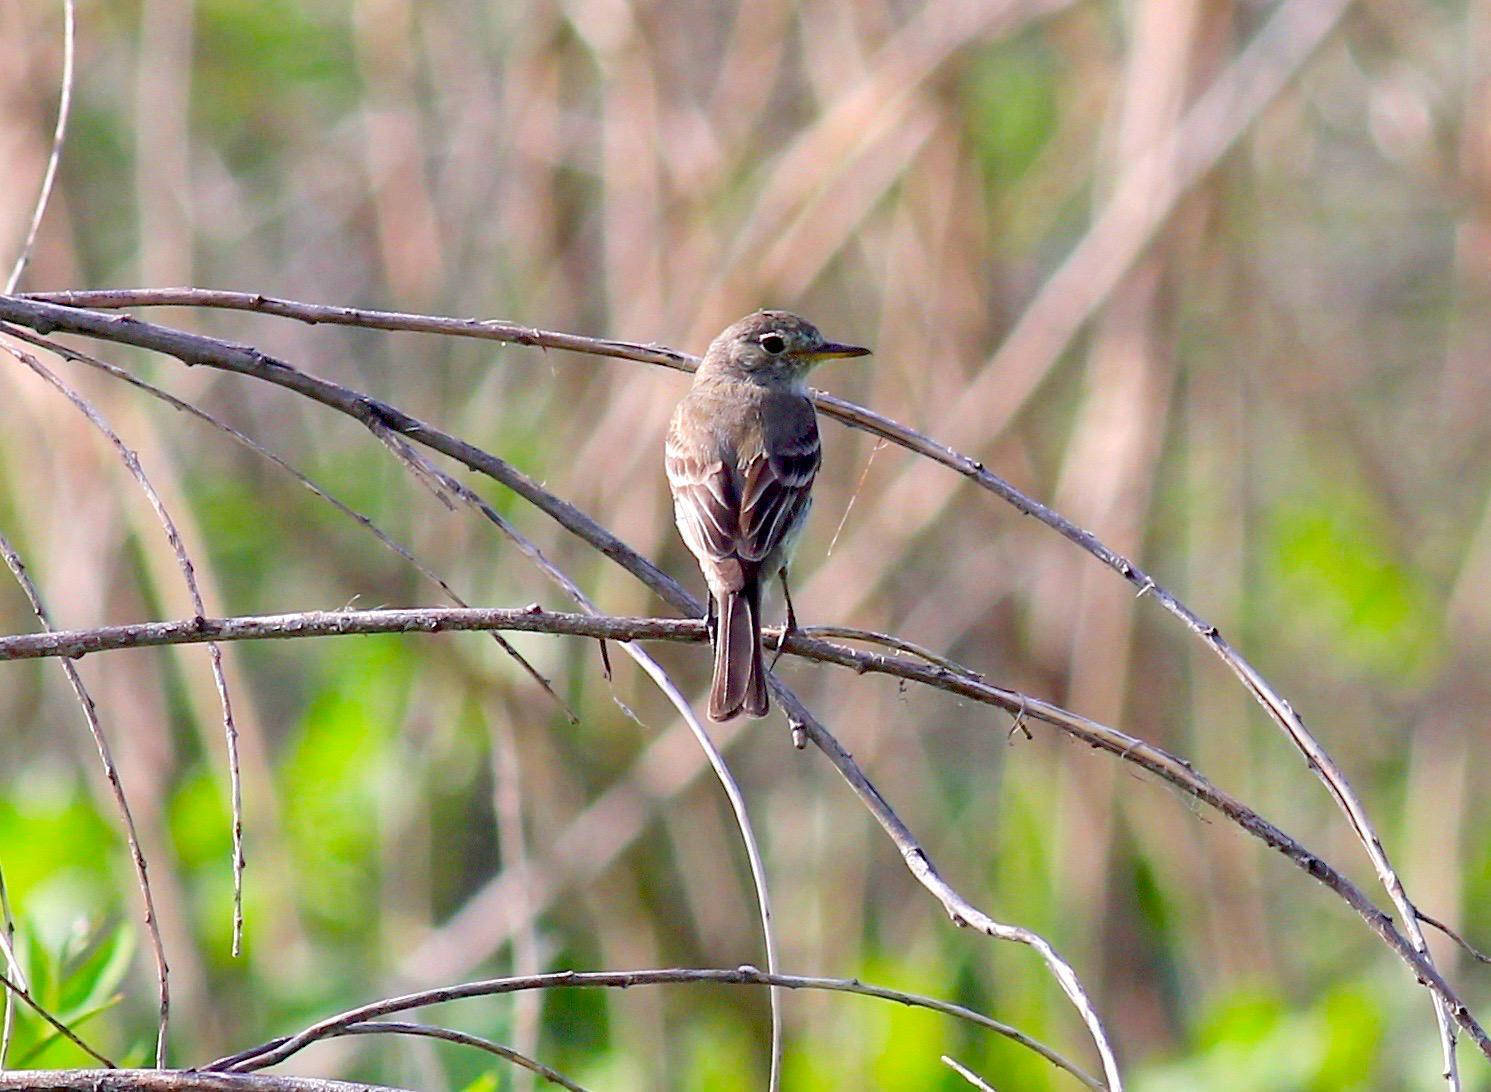 Gray Flycatcher Photo by Kathryn Keith